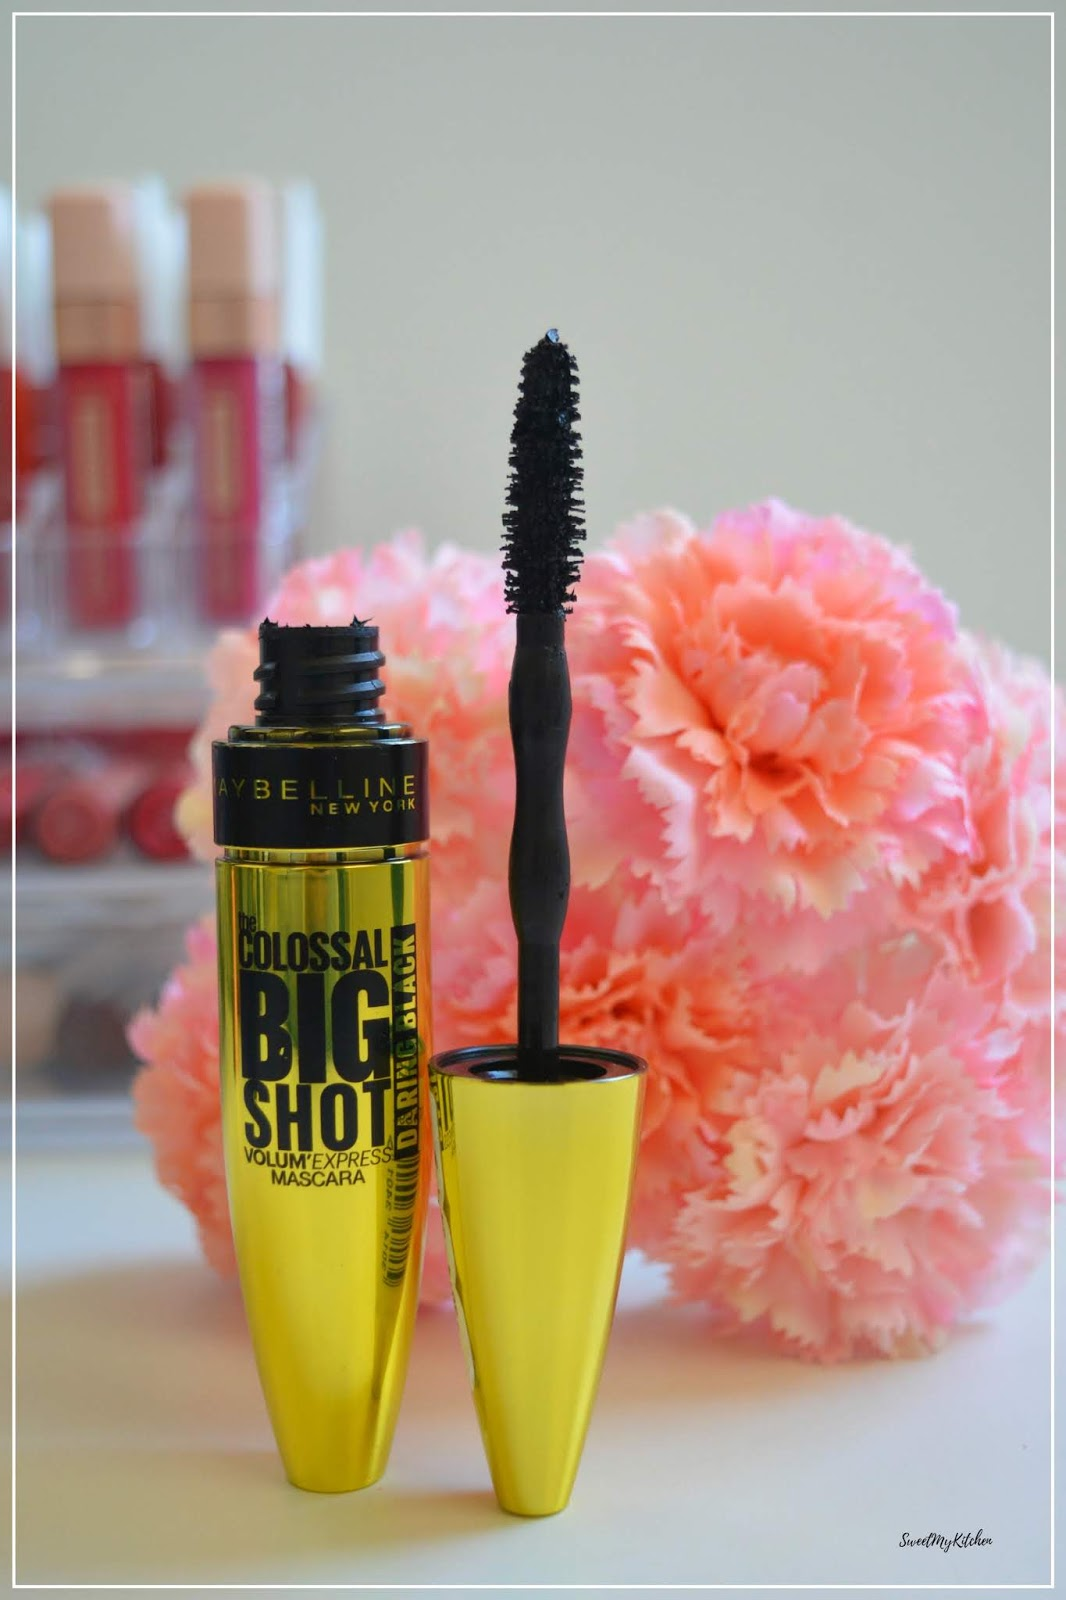 Maybelline Colossal Vig Shot máscara de pestanas